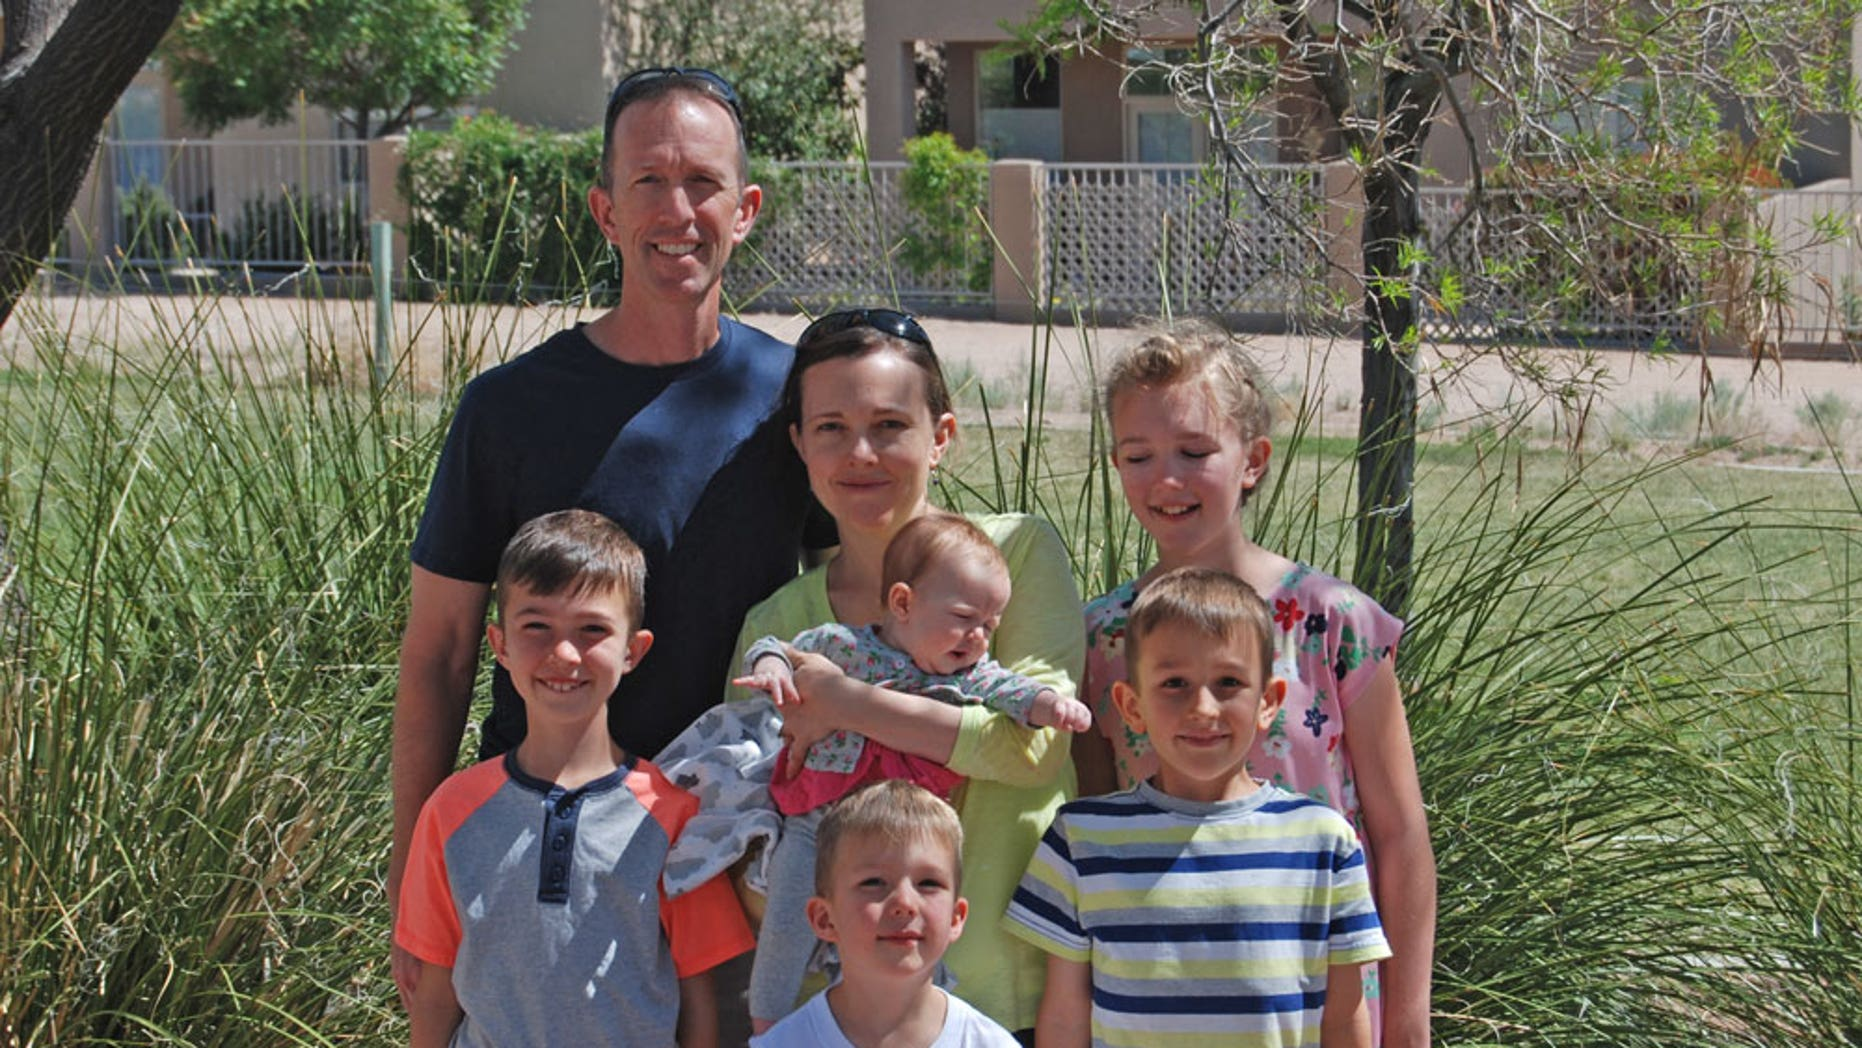 Col. Leland Bohannon, seen here with his family, was suspended from command over his views, according to his attorney.